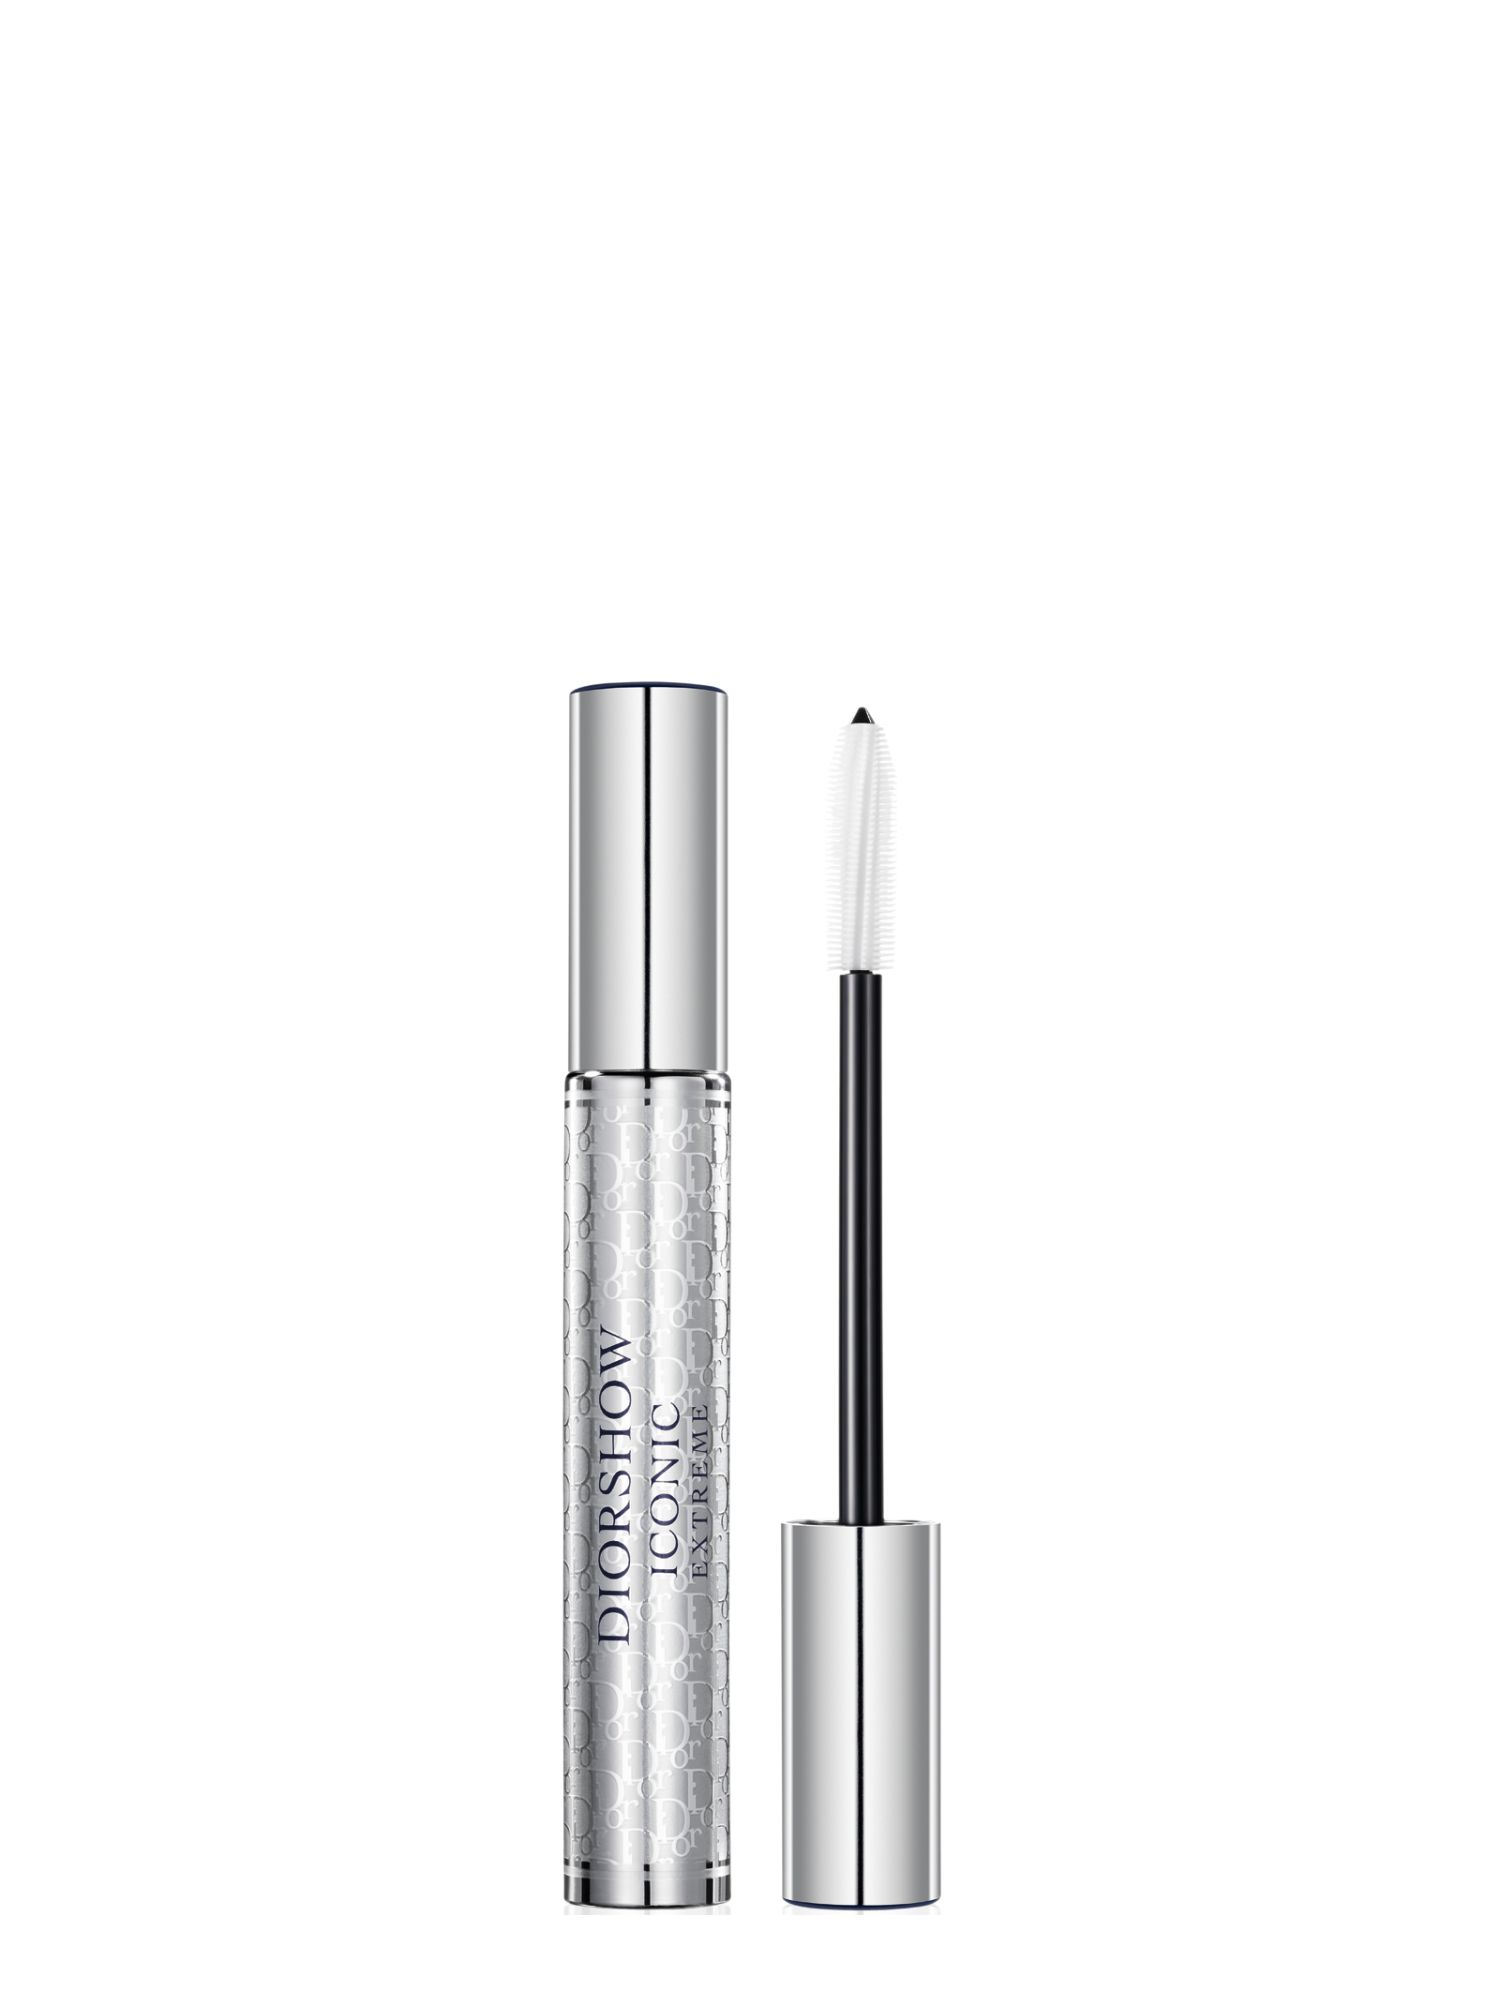 Dior Diorshow Iconic Extreme Lash Curing Mascara